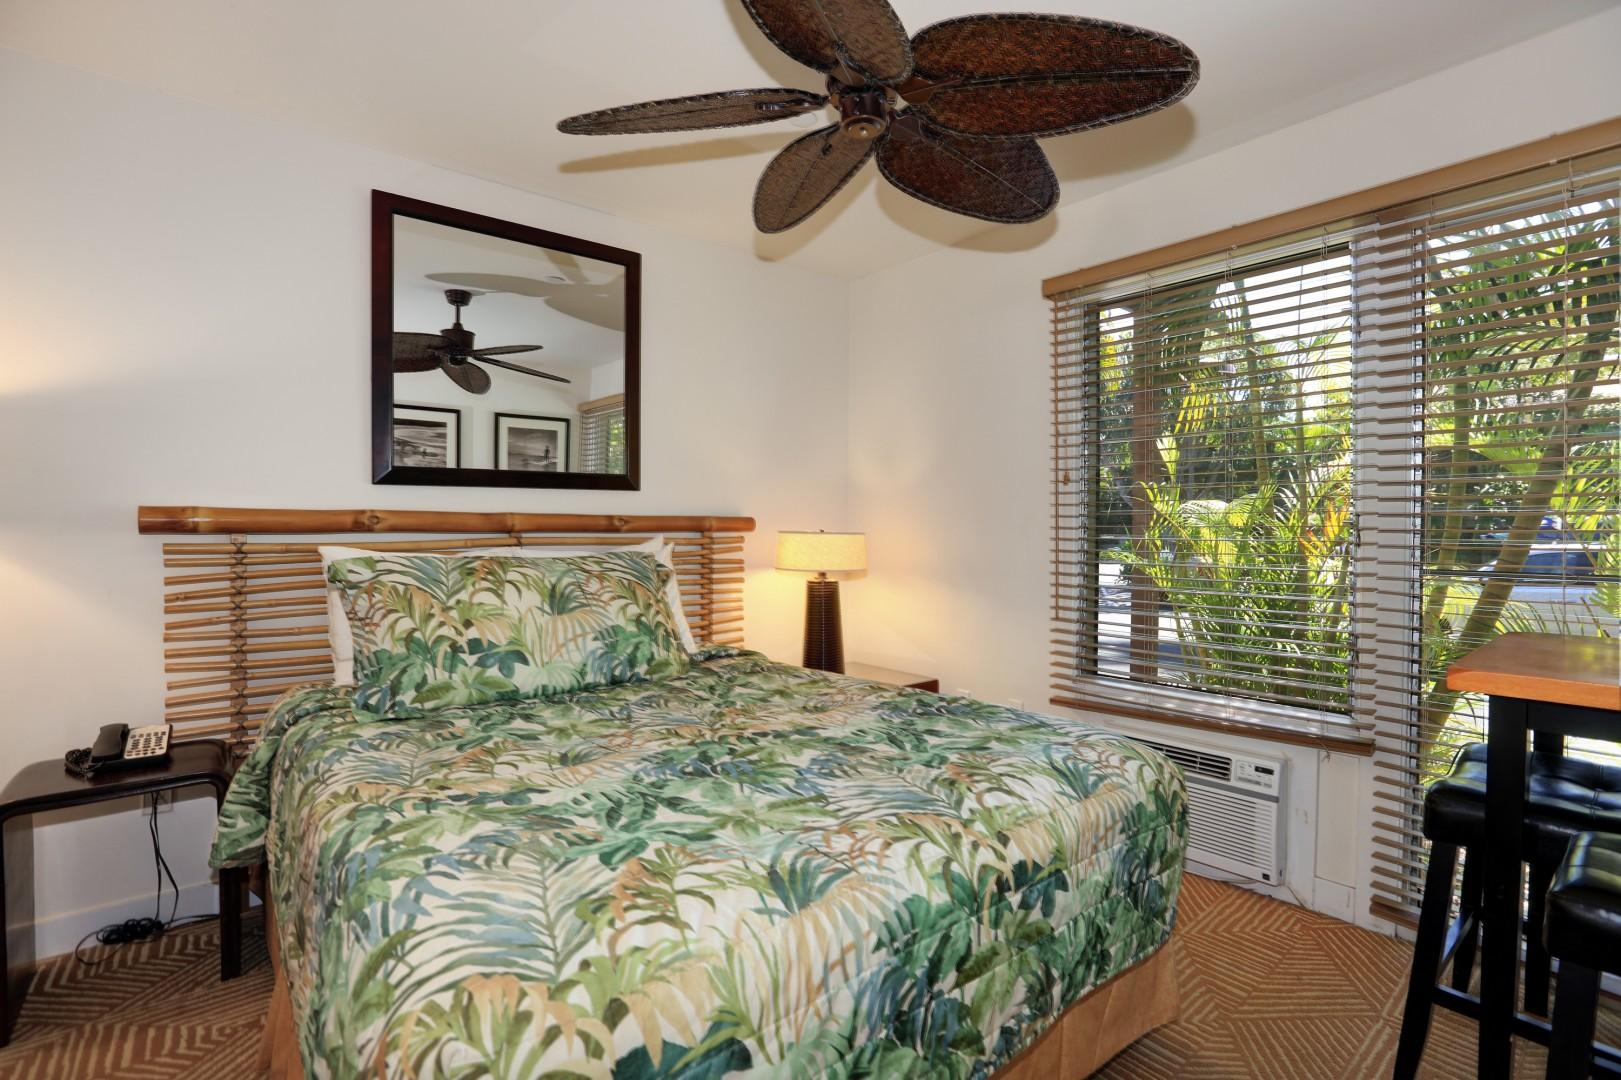 Air conditioning, a ceiling fan, and a comfortable queen-size bed.